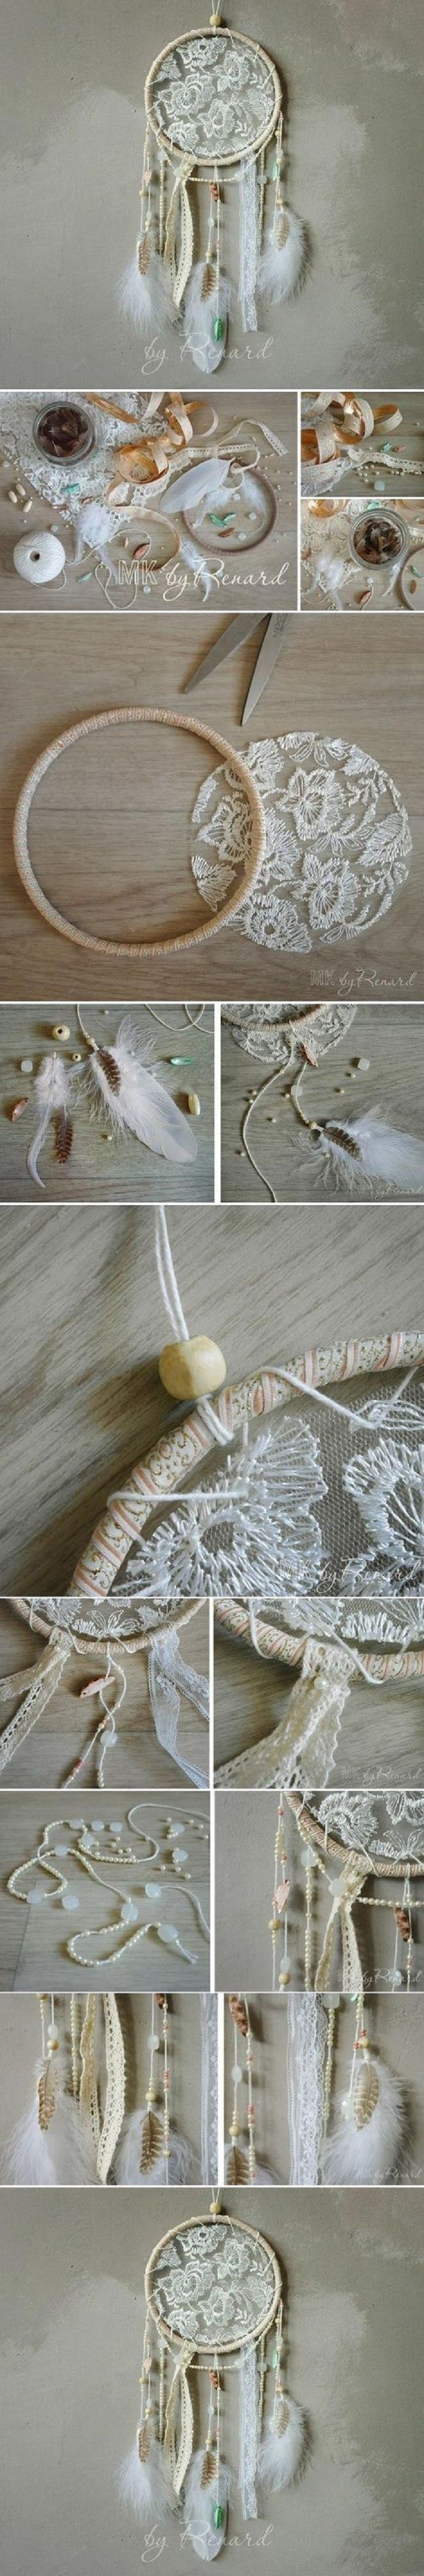 Shabby Chic Dream Catcher. I think I'll add pearls and crystals to mine! Super Lovely!